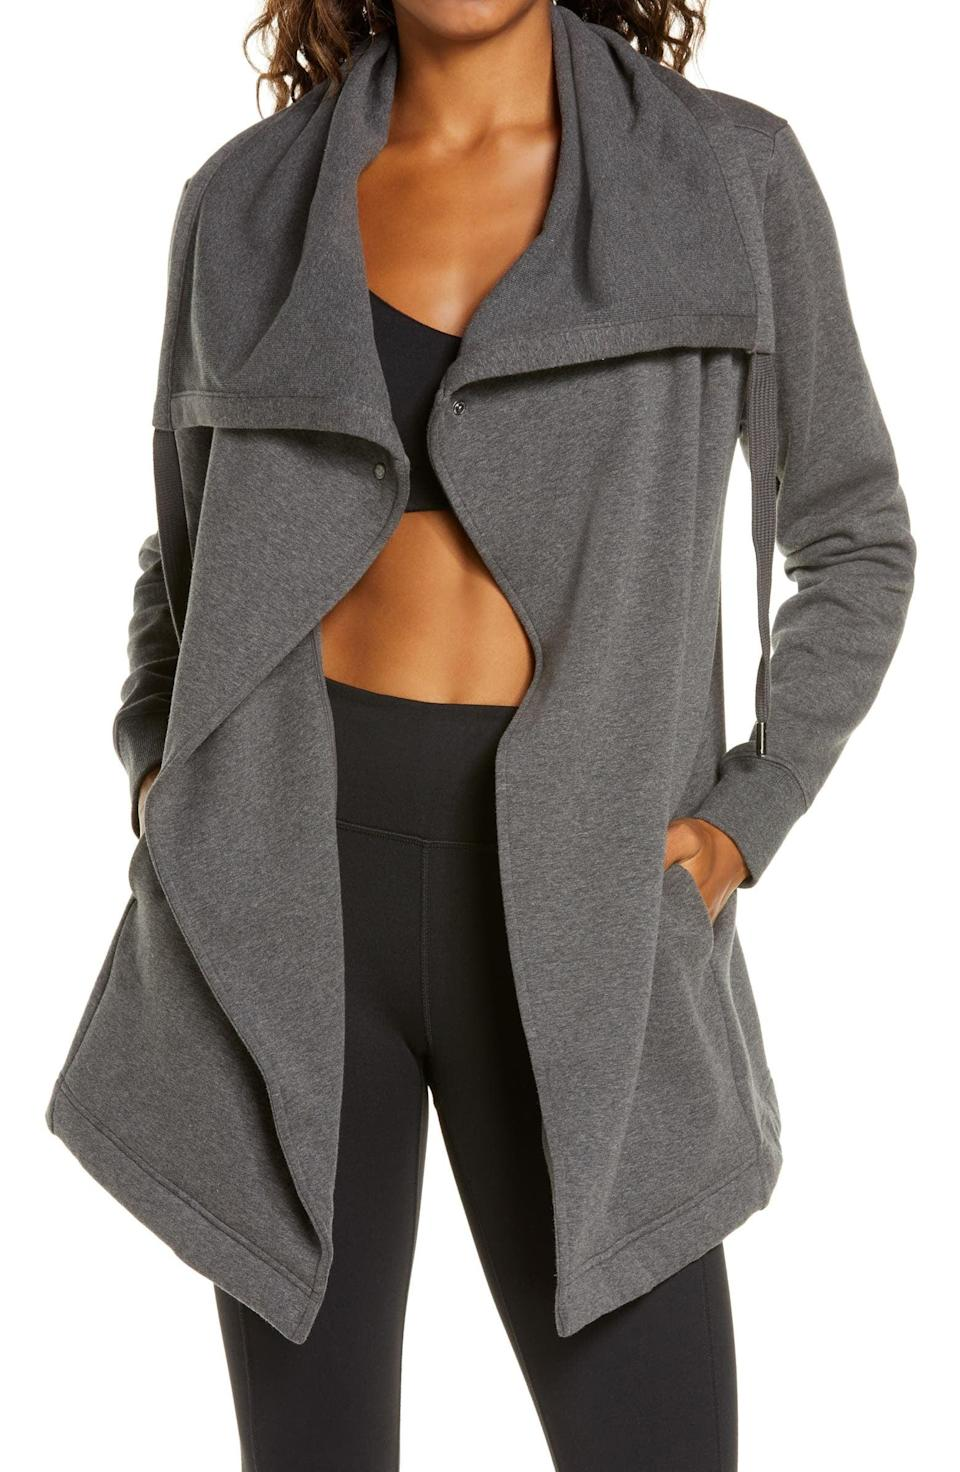 <p>Whether they're running errands or running to the gym, the <span>Zella Amazing Cozy Wrap Jacket</span> ($89) will keep them cozy and warm during the colder months. The wrap jacket can be worn as a cute cardigan or as a proper jacket. </p>